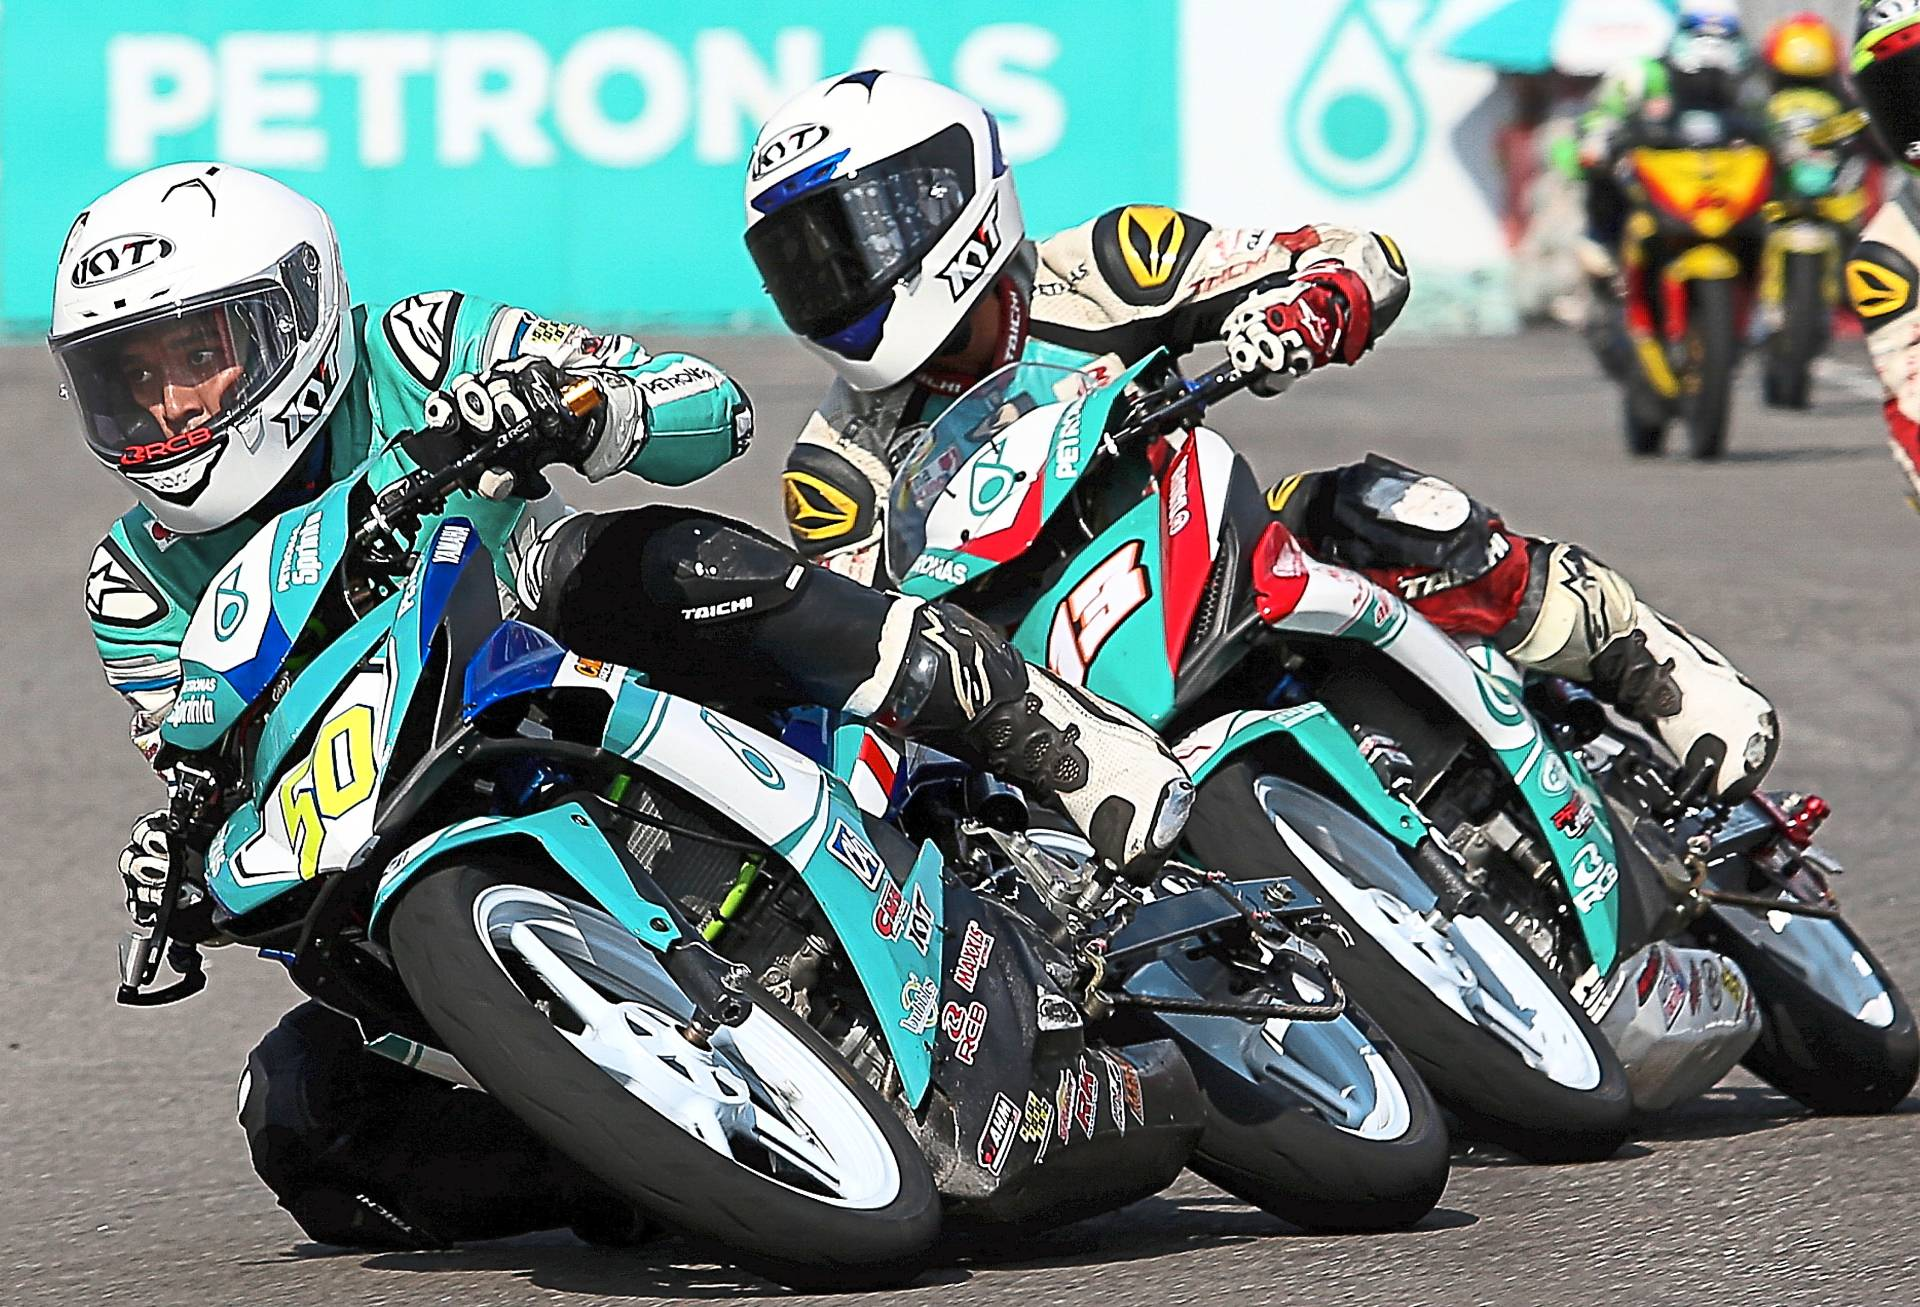 Ahmad Afif (left) and Md Akid in the thick of action during the 9th round of the 2019 Cub Prix Malaysia Petronas championship in Jempol, Negri Sembilan.